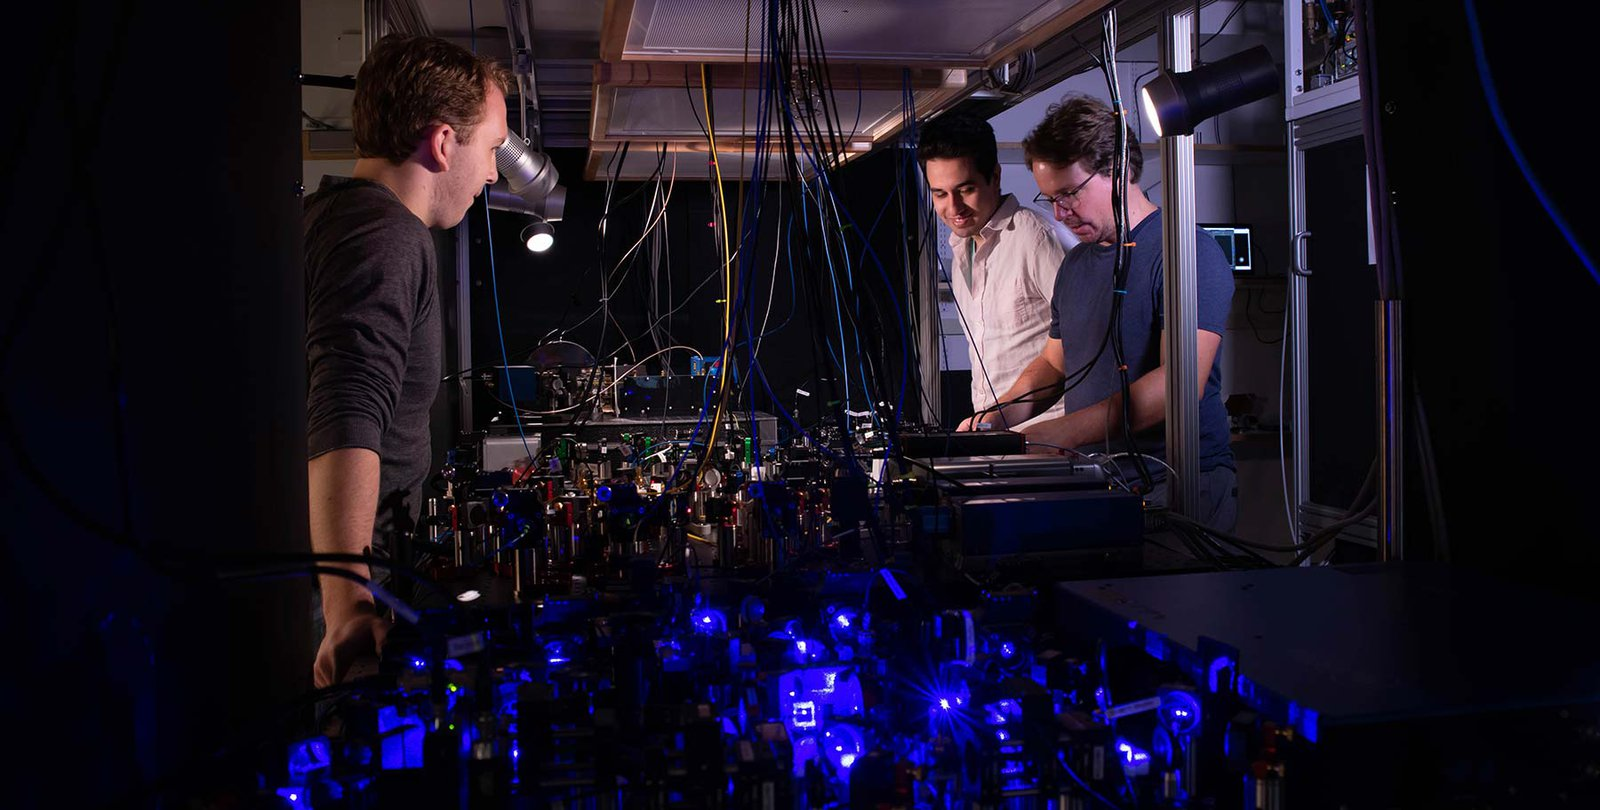 Adam Shaw, Ivaylo Madjarov and Manuel Endres work on their laser-based apparatus at Caltech